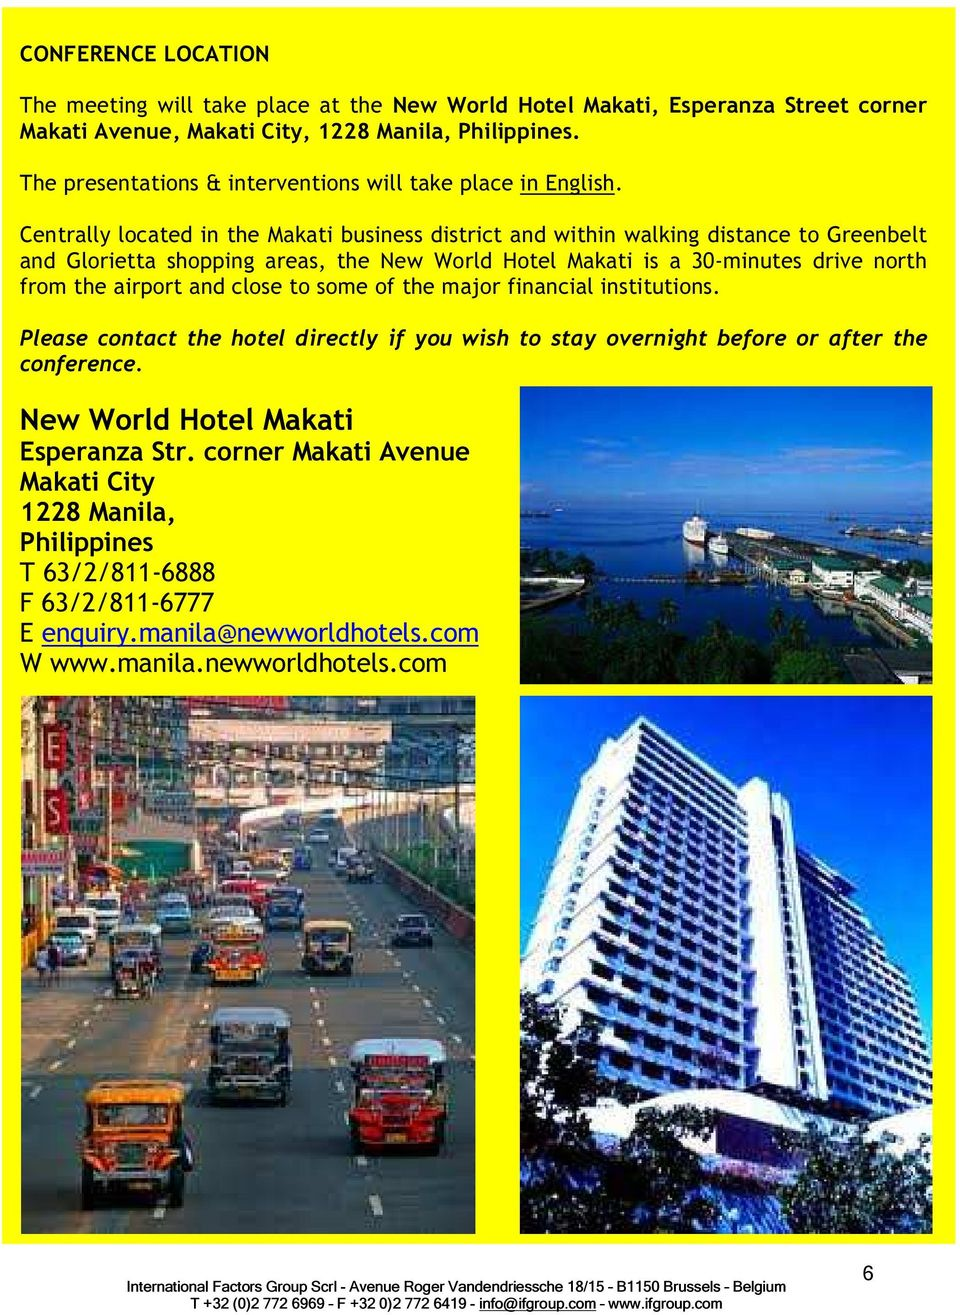 Centrally located in the Makati business district and within walking distance to Greenbelt and Glorietta shopping areas, the New World Hotel Makati is a 30-minutes drive north from the